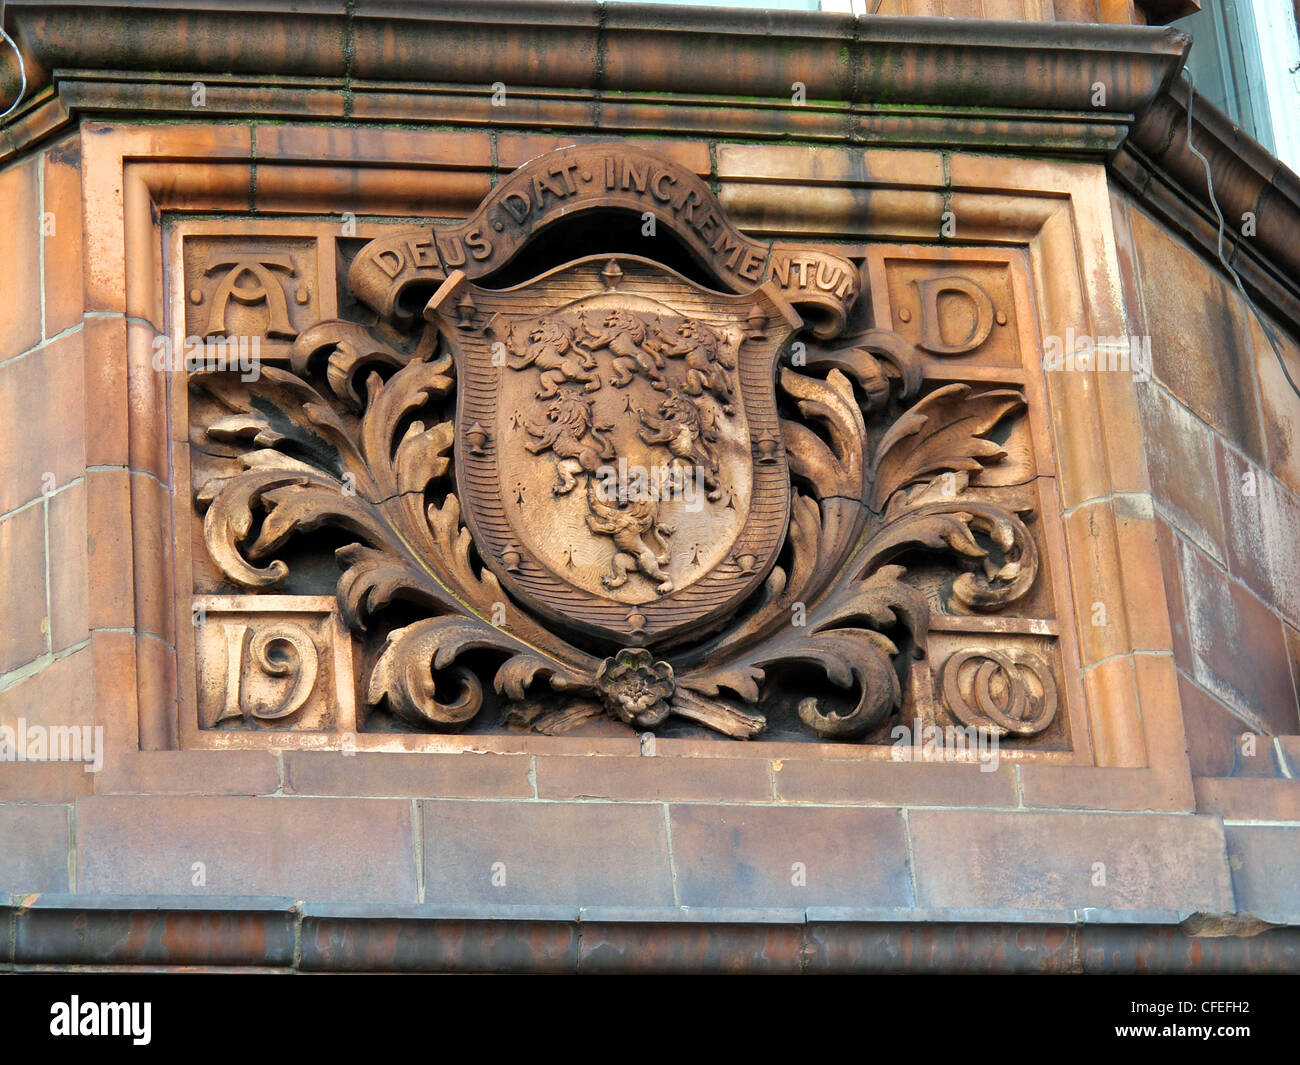 Crest,on,Warrington,Police,Headquarters,Building,in,stonework,gotonysmith,Cheshire,Constabulary,Parker,St,street,historic,history,1900,local,England,UK,GB,Great,Britain,Warringtonians,Crests,sandstone,gotonysmith,Buy Pictures of,Buy Images Of